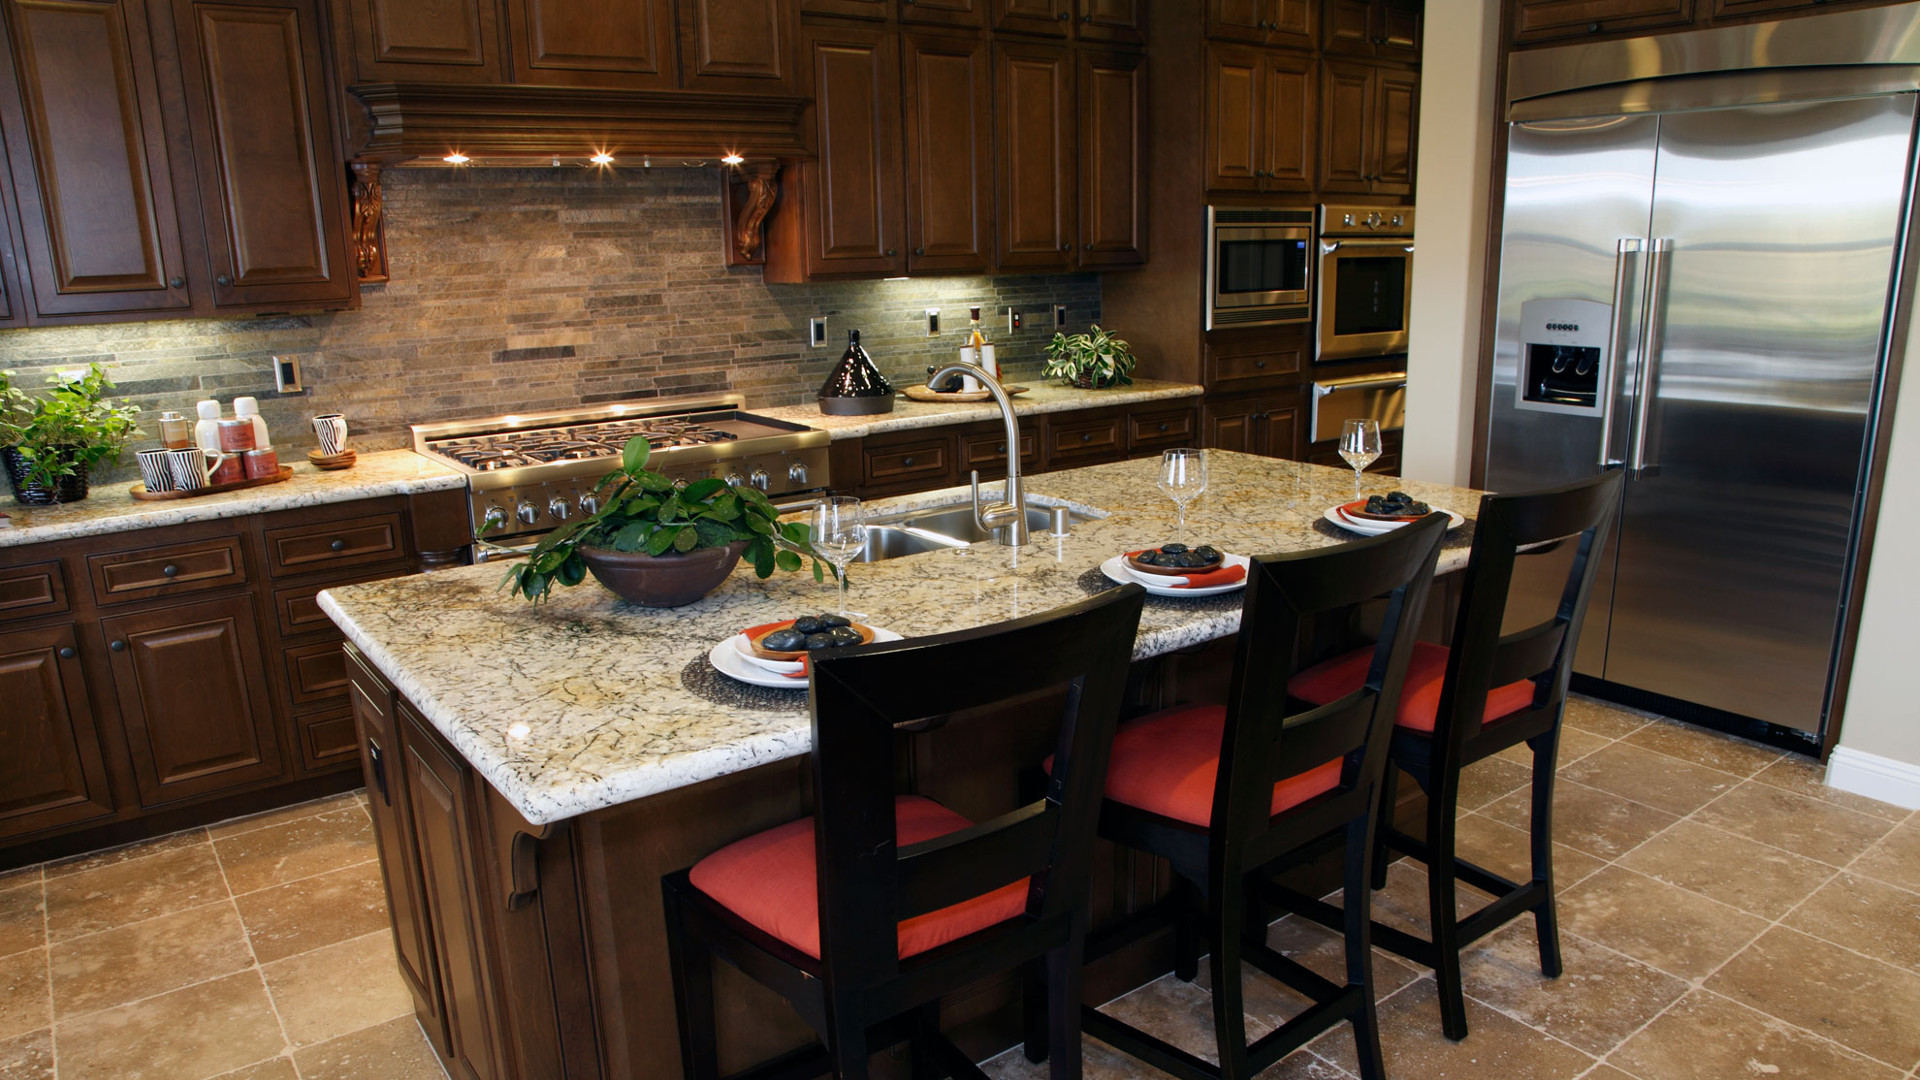 Granite or Marble - Know What is Best For Kitchen Countertops